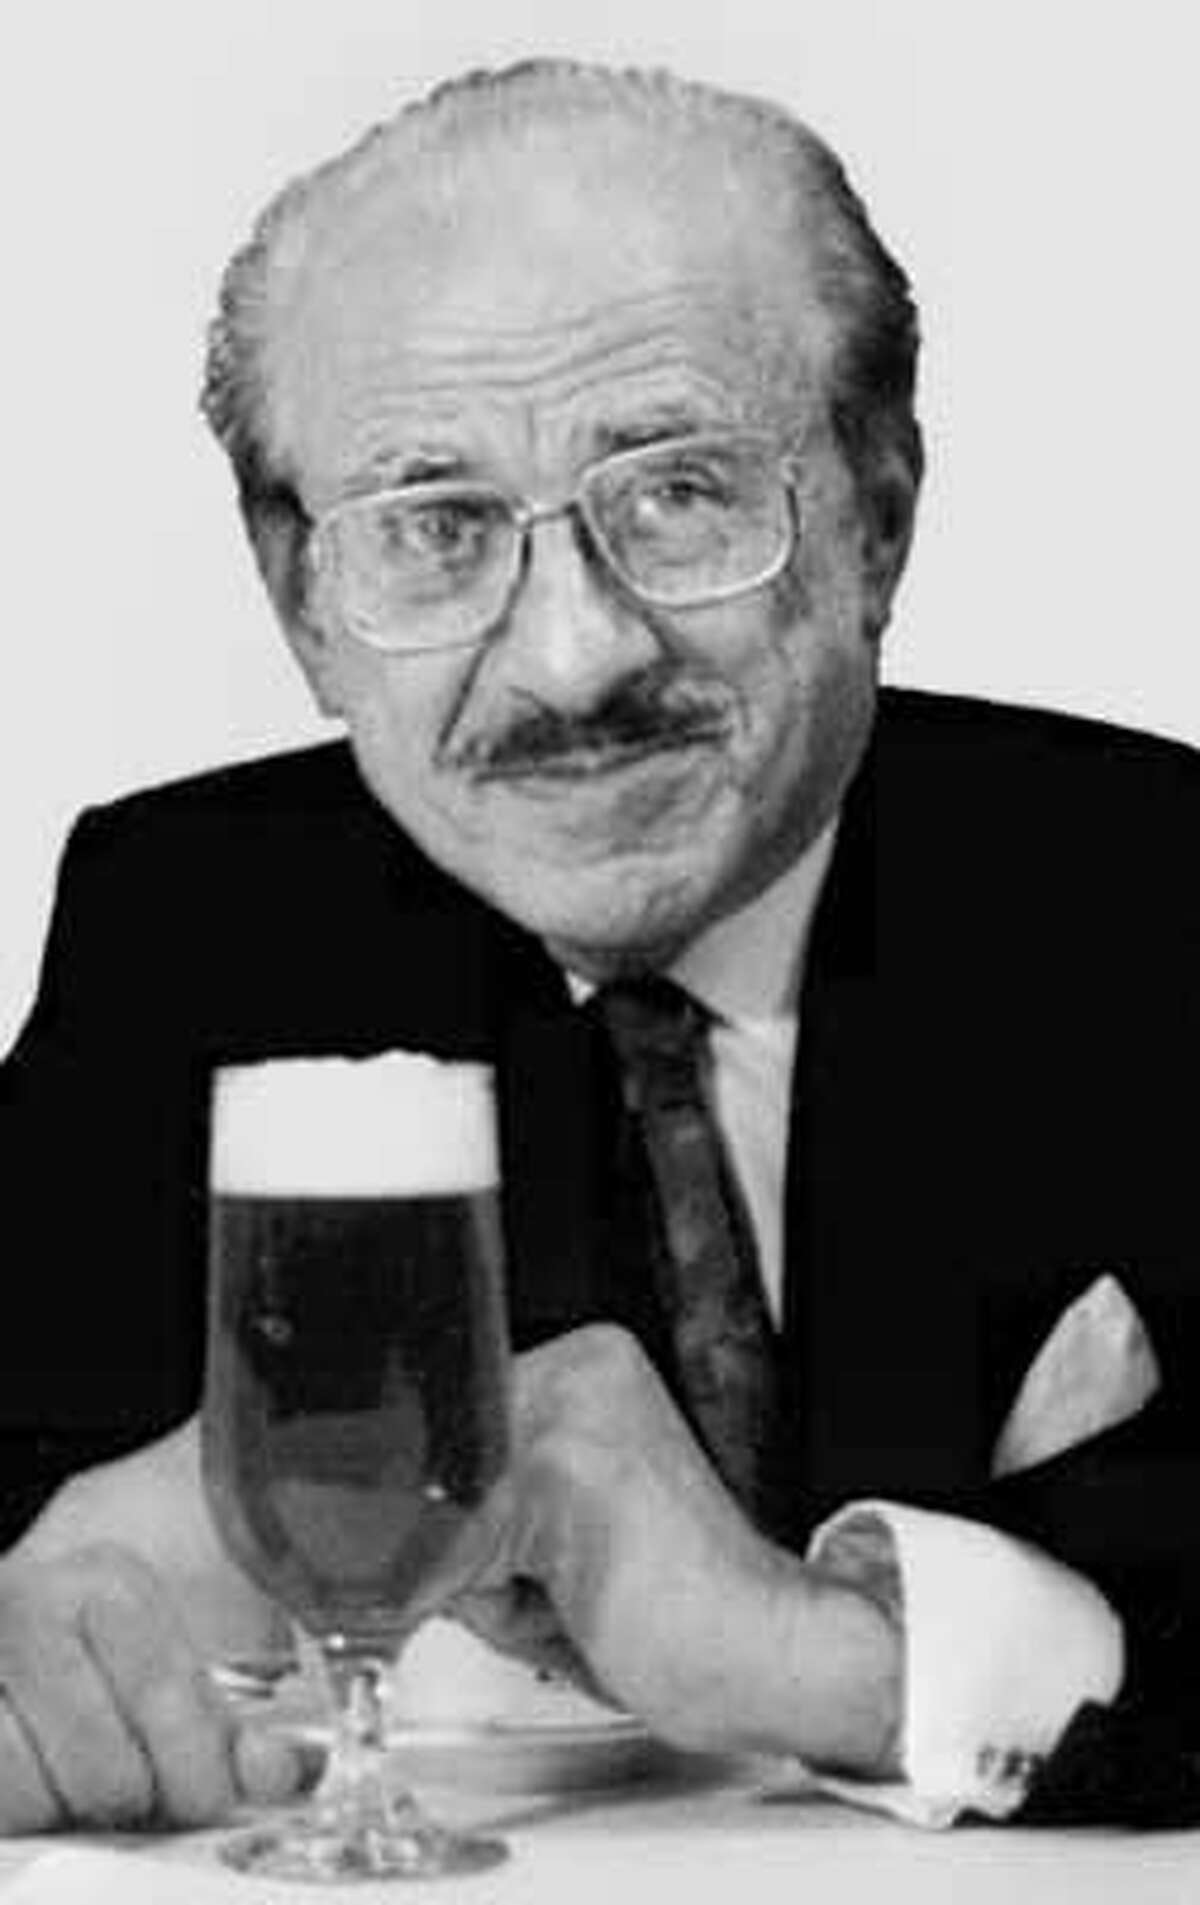 Obituary photo of Joseph L. Owades, PhD. Noted brewing expert and inventor of light beer. Born: July 9, 1919, New York, New York Died: December 16, 2005, Sonoma, California Photo: Courtesy of the family Ran on: 12-20-2005 Joseph Owades created the formulas for Samuel Adams, Petes Wicked Ale and Foggy Bottom Beer, among others. Ran on: 12-20-2005 The vehicle Tim Albone was riding in